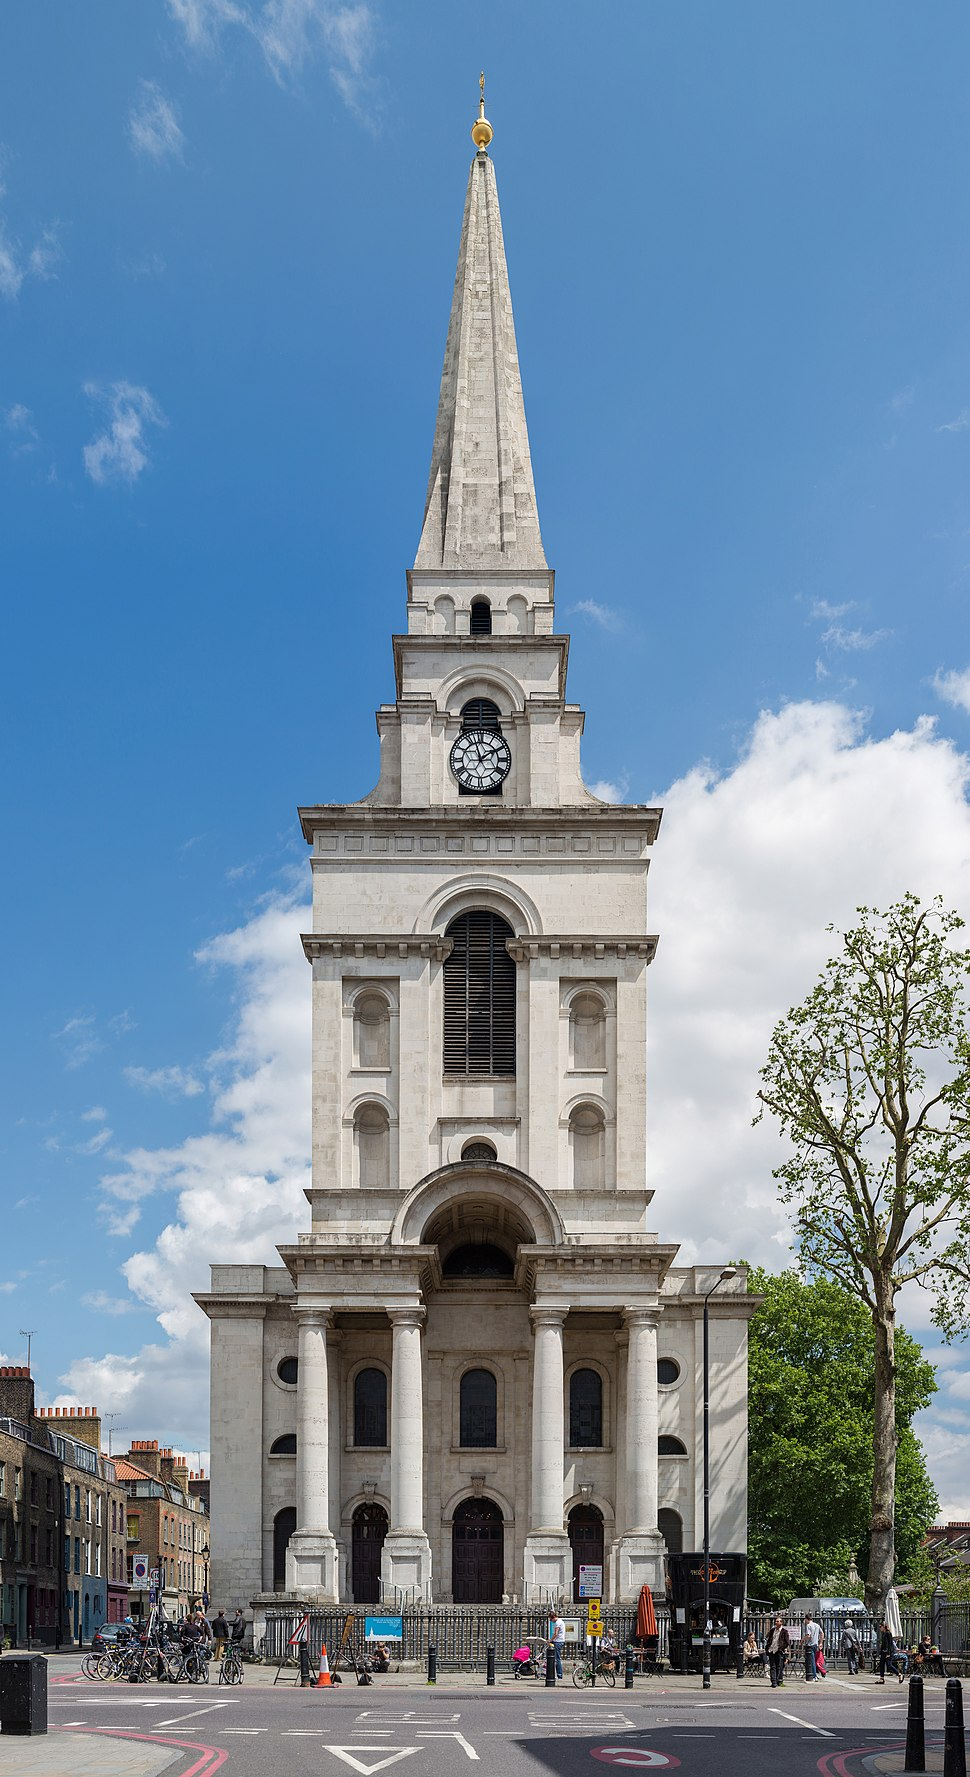 List of churches in London - Howling Pixel